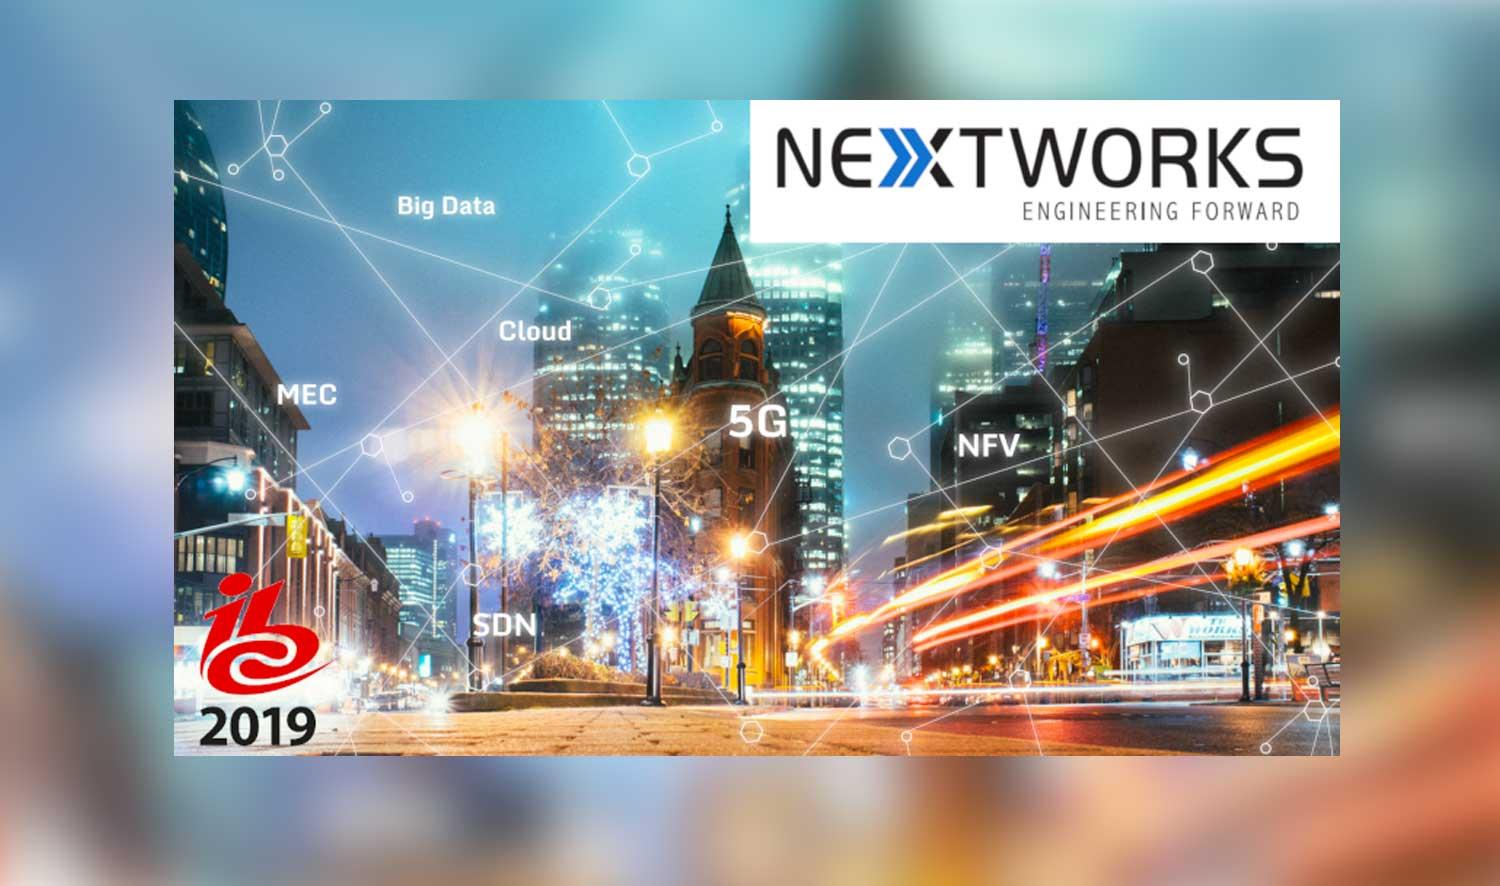 Nextworks' Virtual CDN PoC for UHD at IBC'19